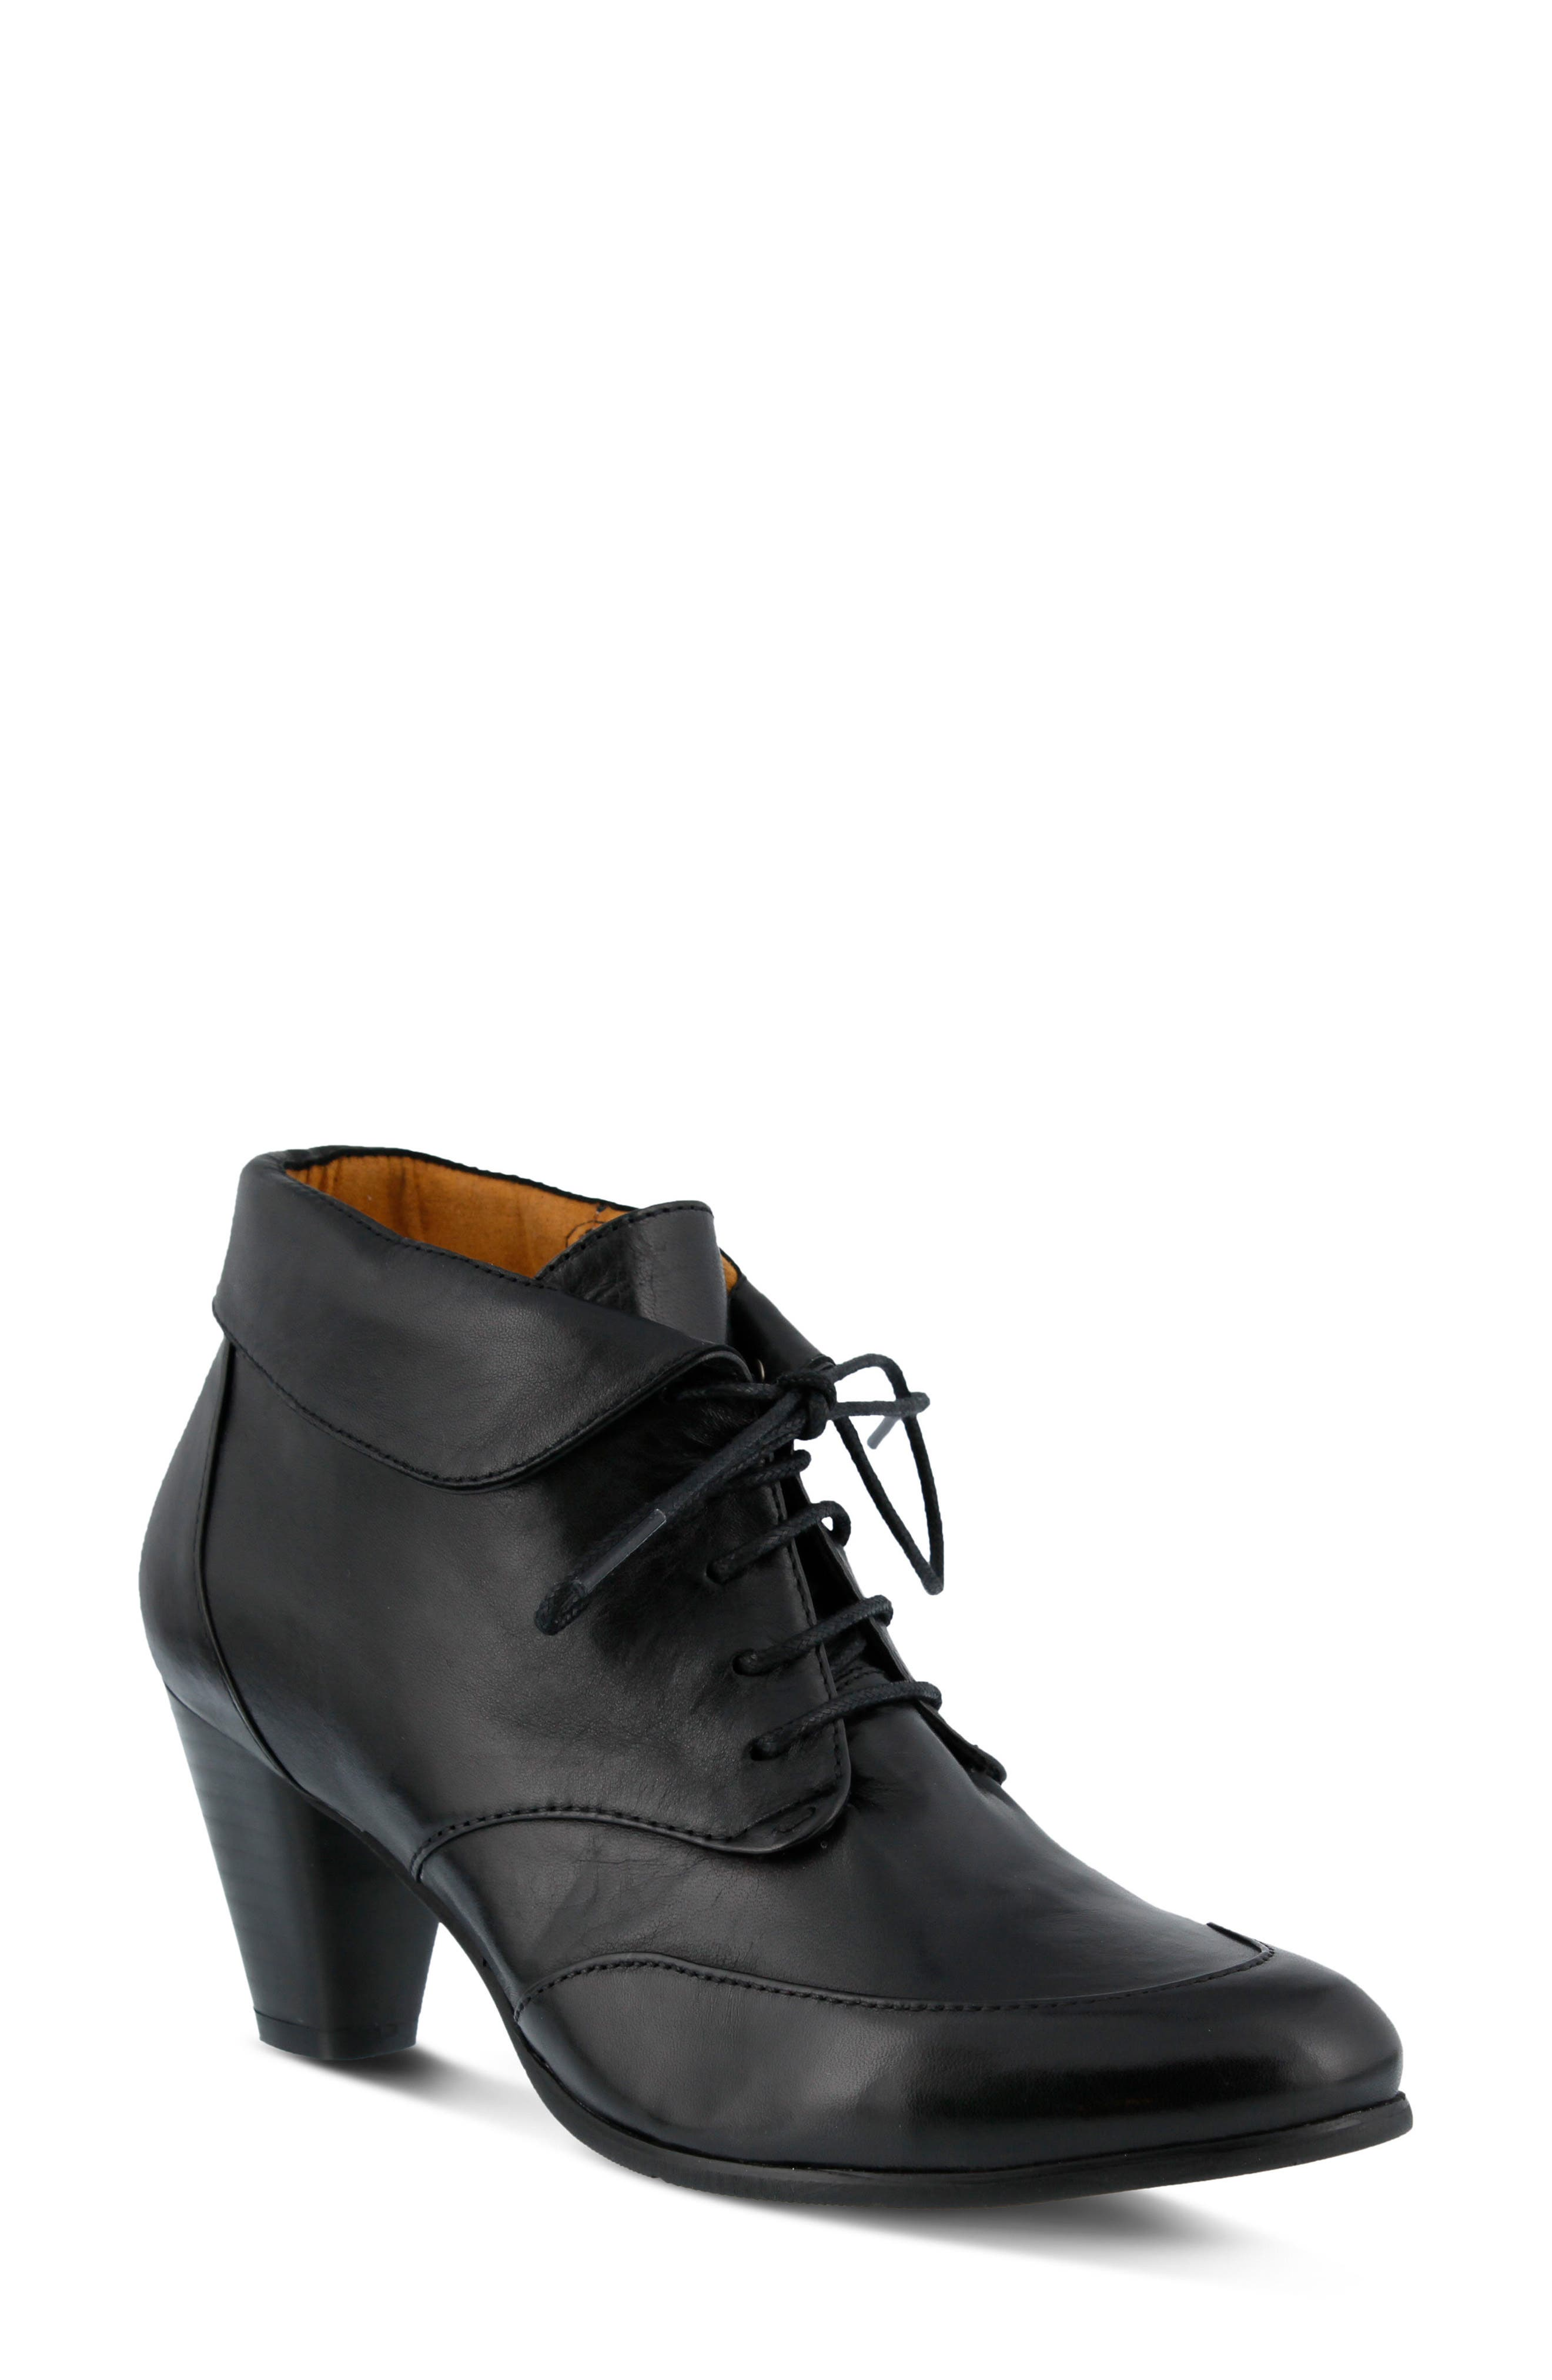 Conquer Foldover Cuff Bootie,                             Main thumbnail 1, color,                             Black Leather